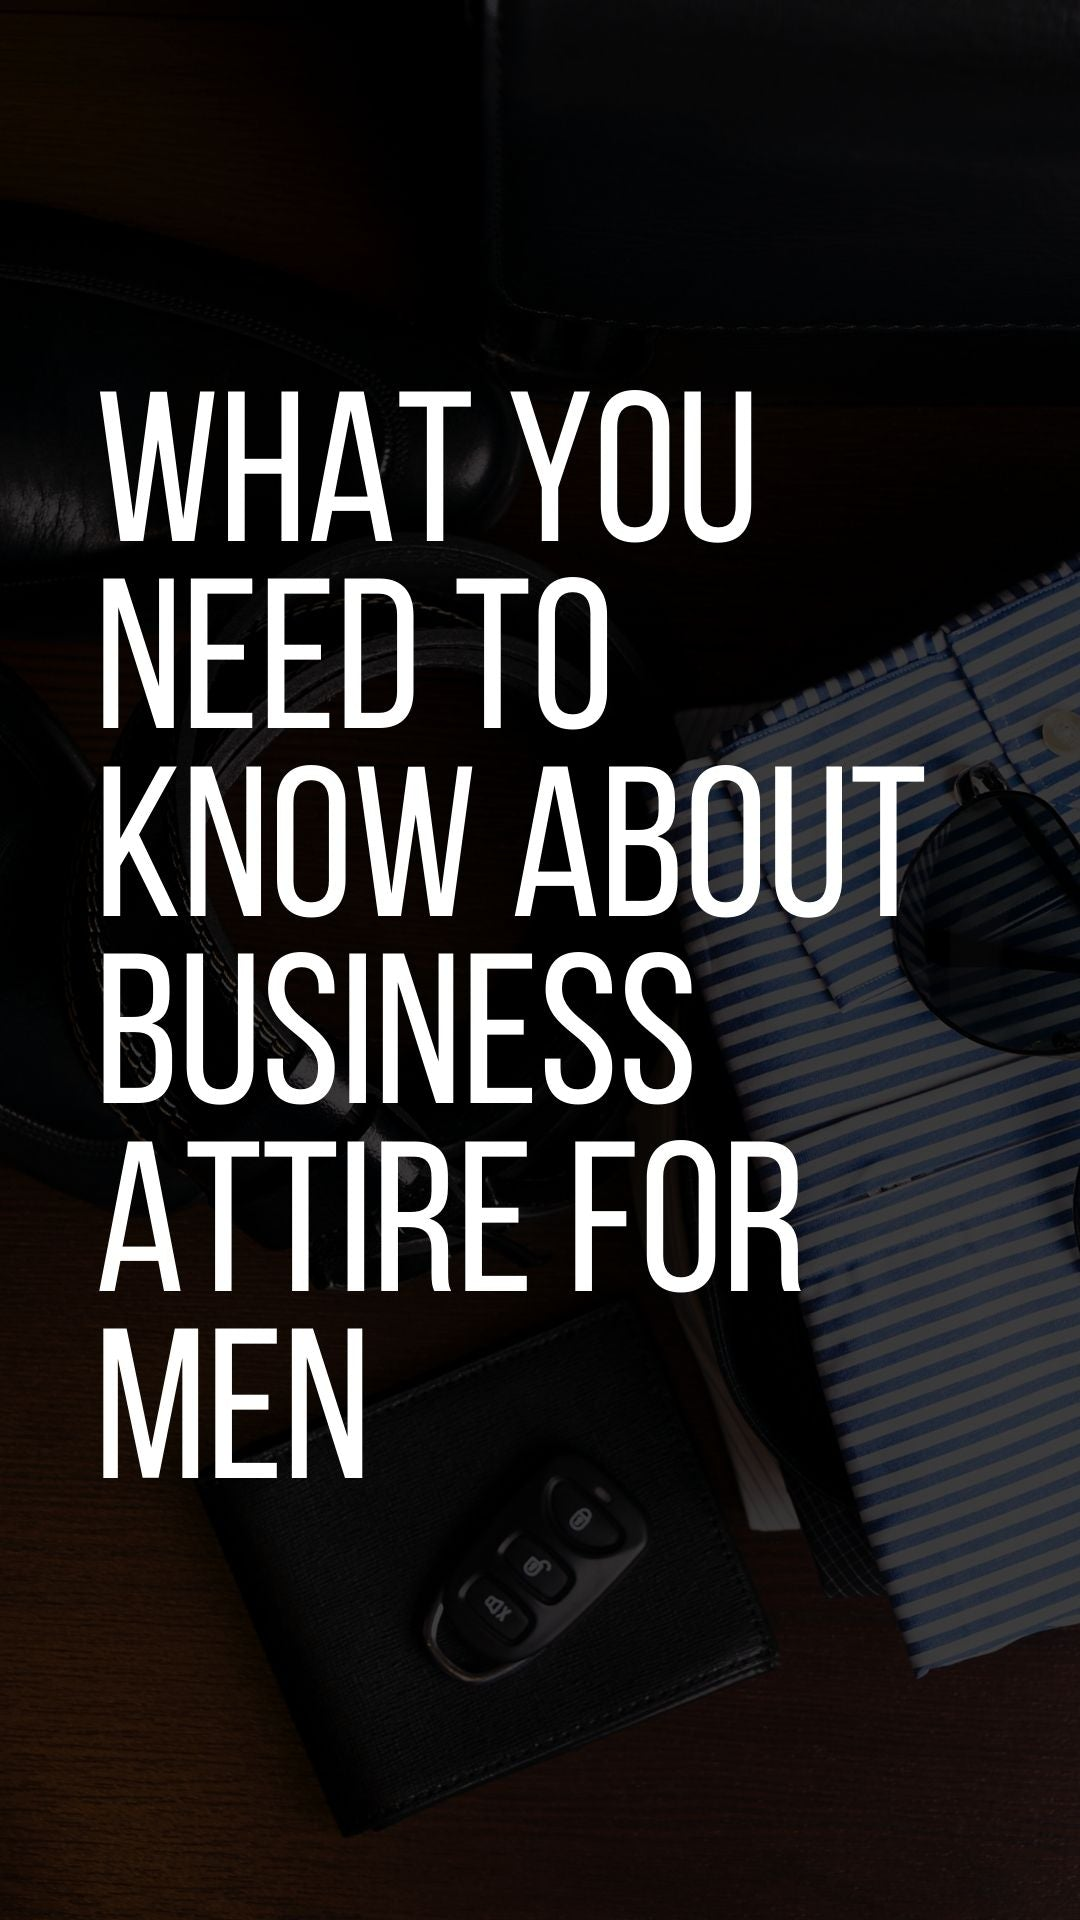 What You Need To Know About Business Attire For Men